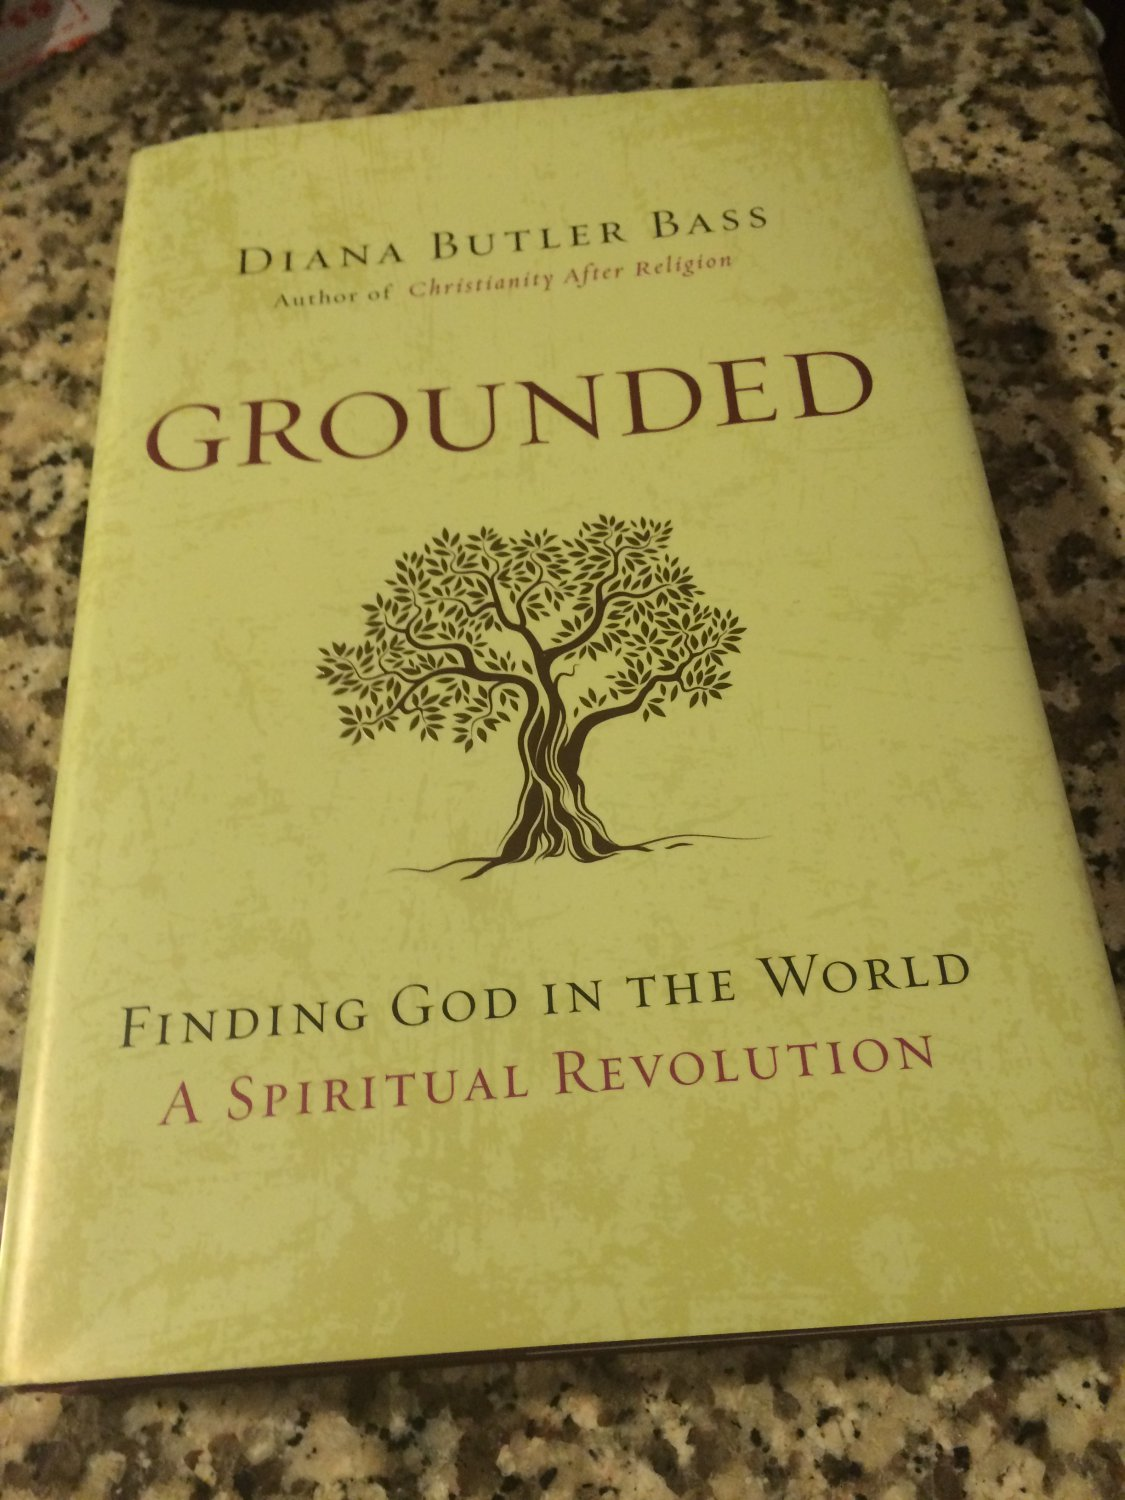 Grounded : Finding God in the World - A Spiritual Revolution by Diana Butler Bass (2015, Hardcover)